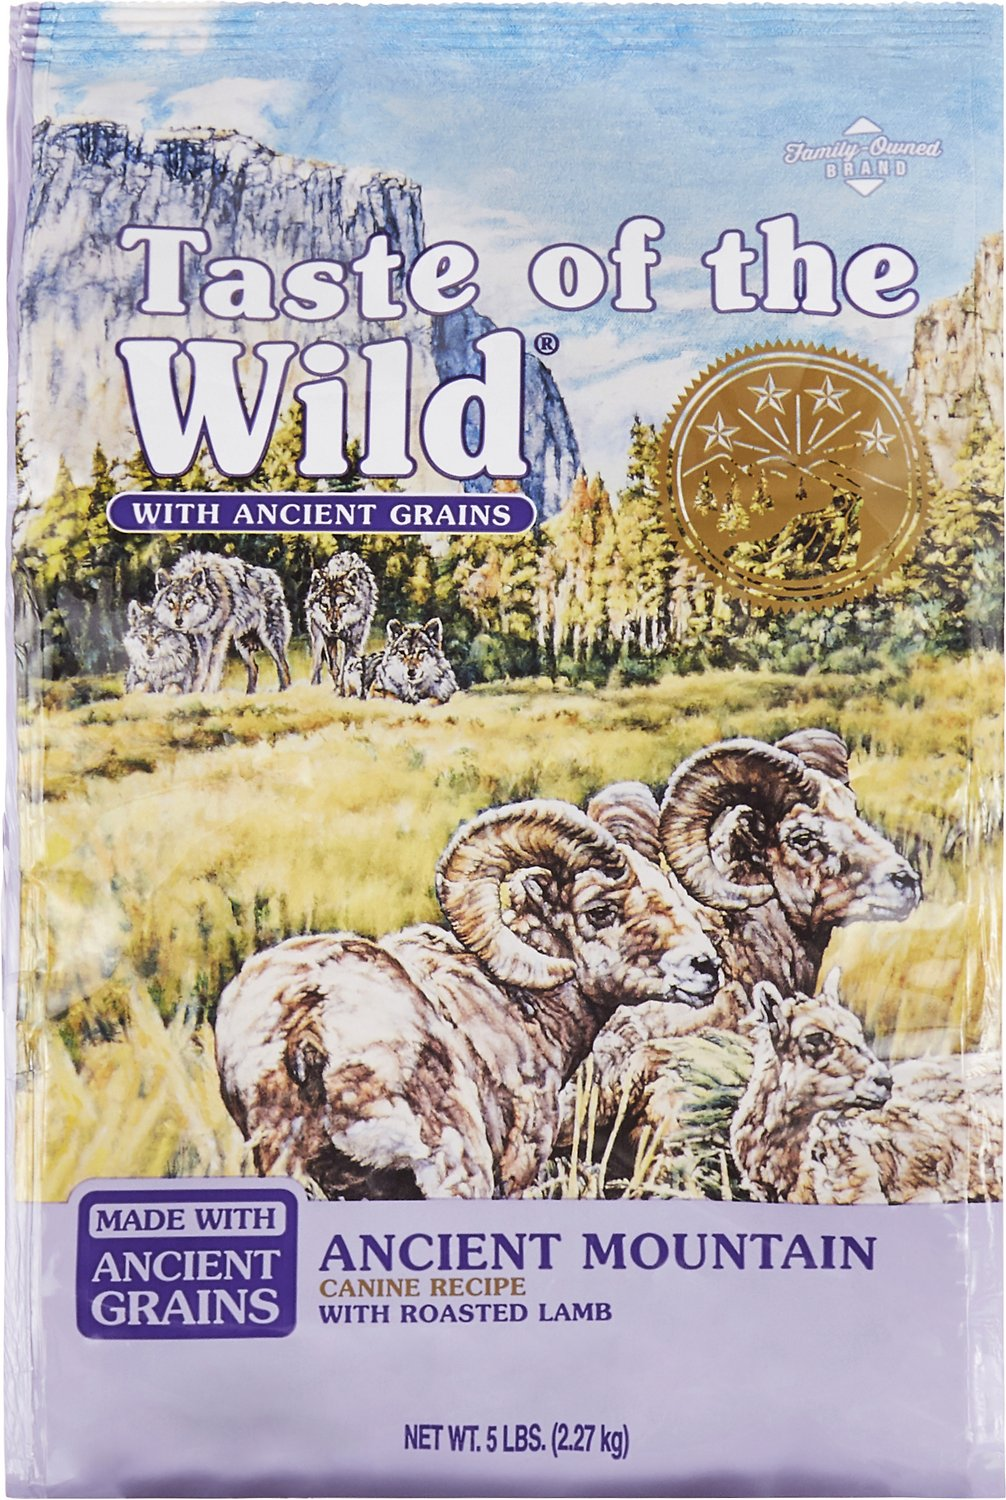 Taste of the Wild Ancient Mountain with Ancient Grains Dry Dog Food Image